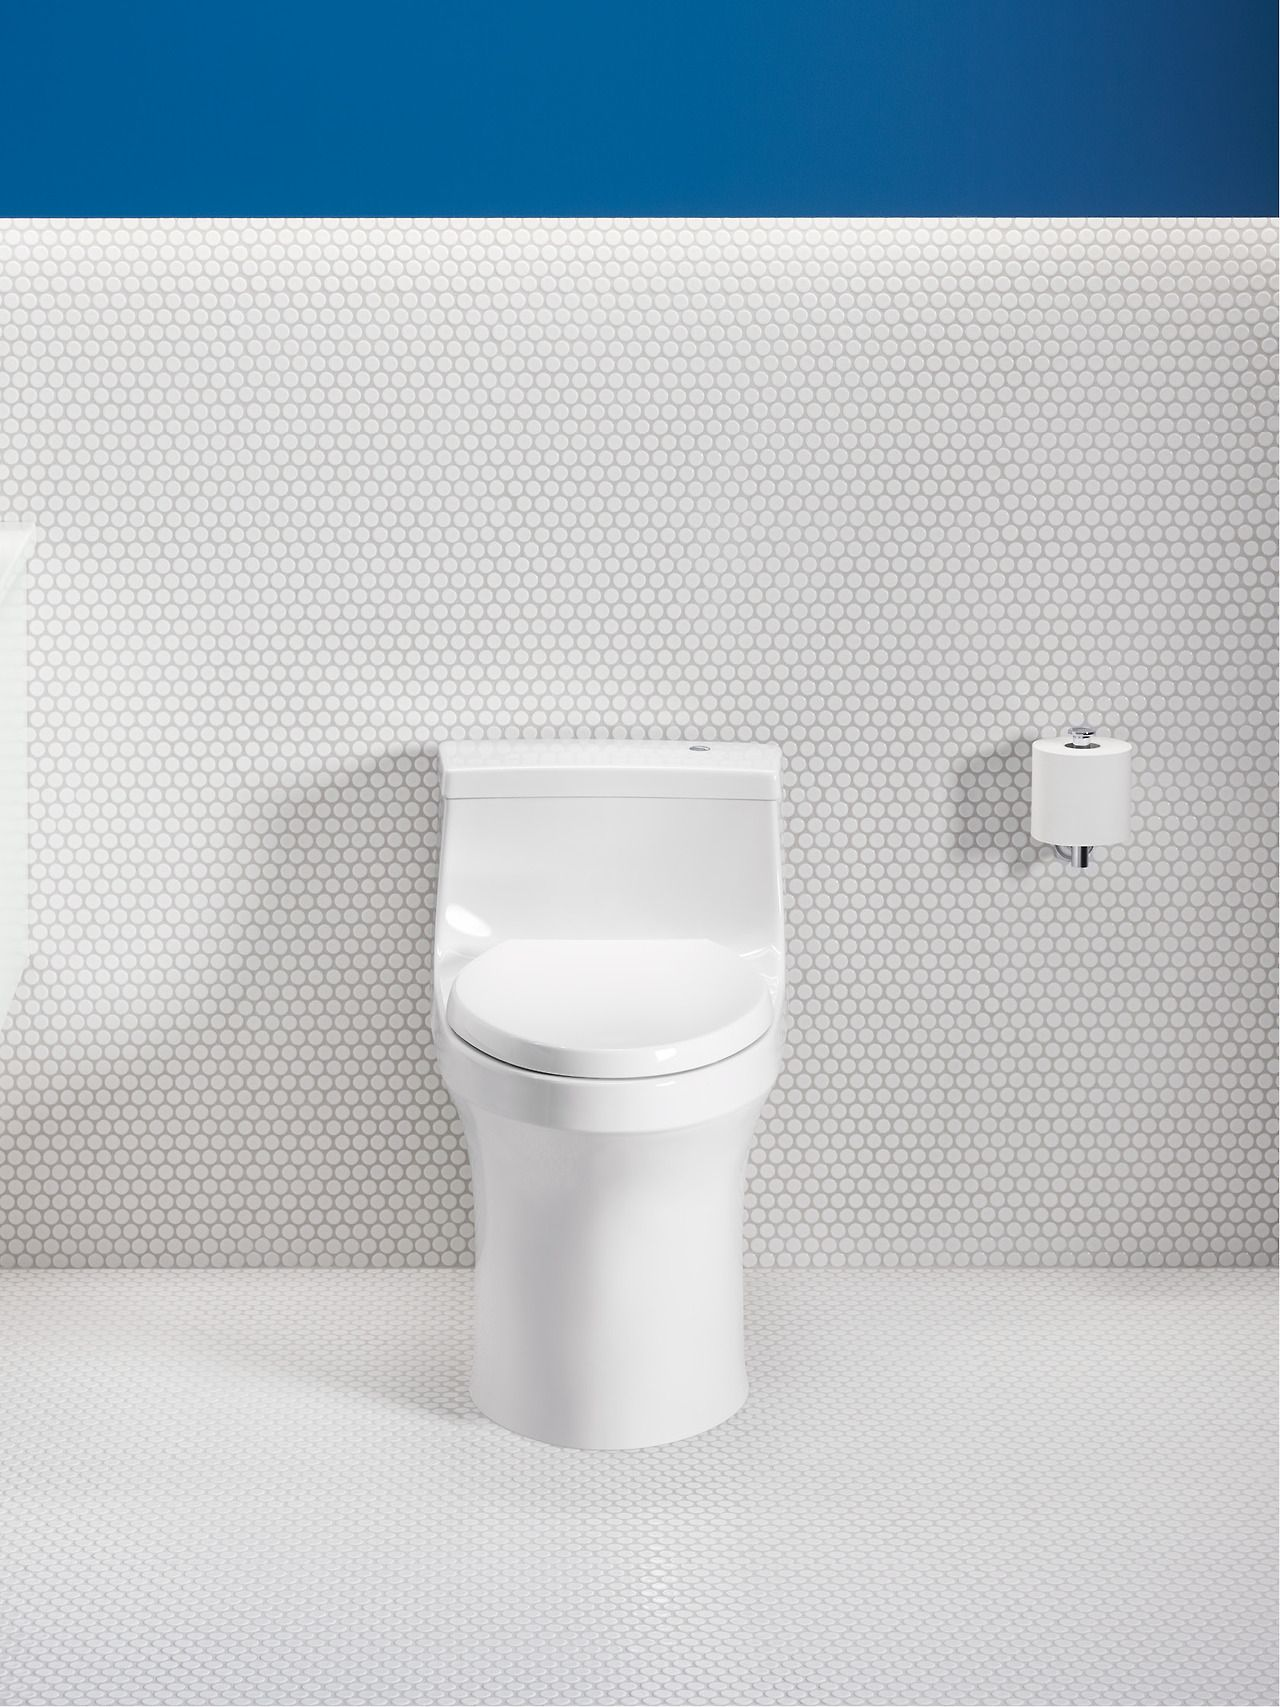 The Bold Look of | Kohler | Pinterest | Toilet, Compact and Minimal ...